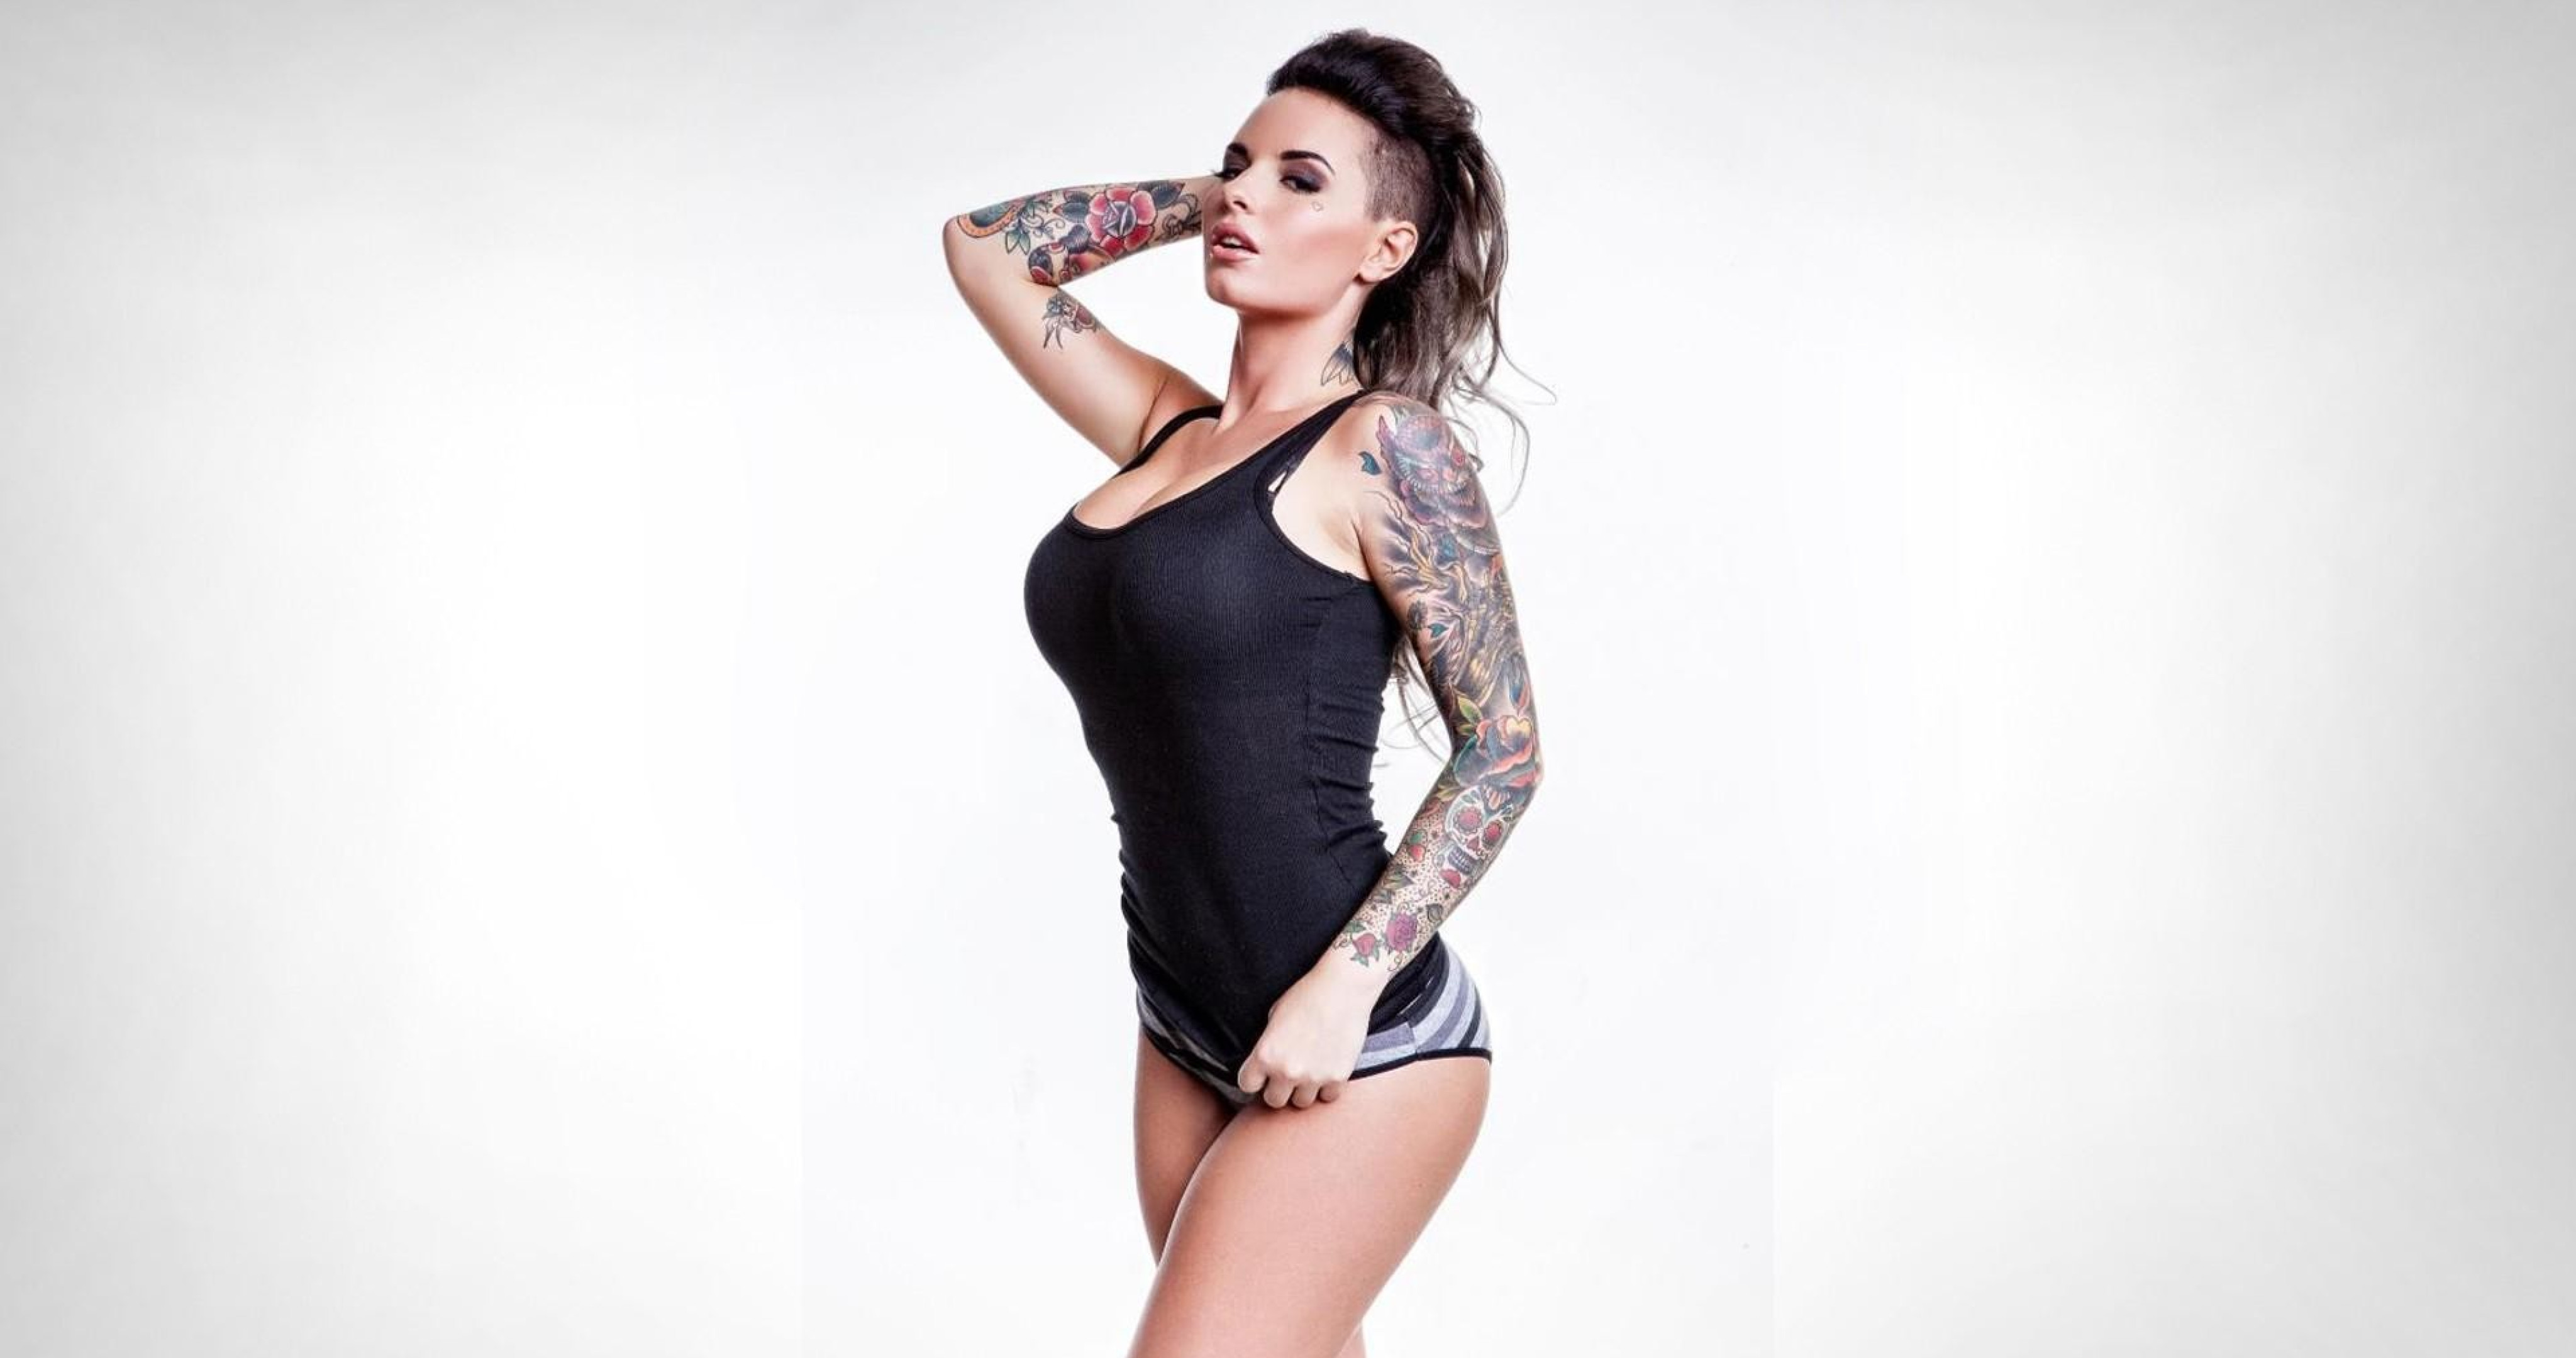 Christy Mack Wallpapers HD